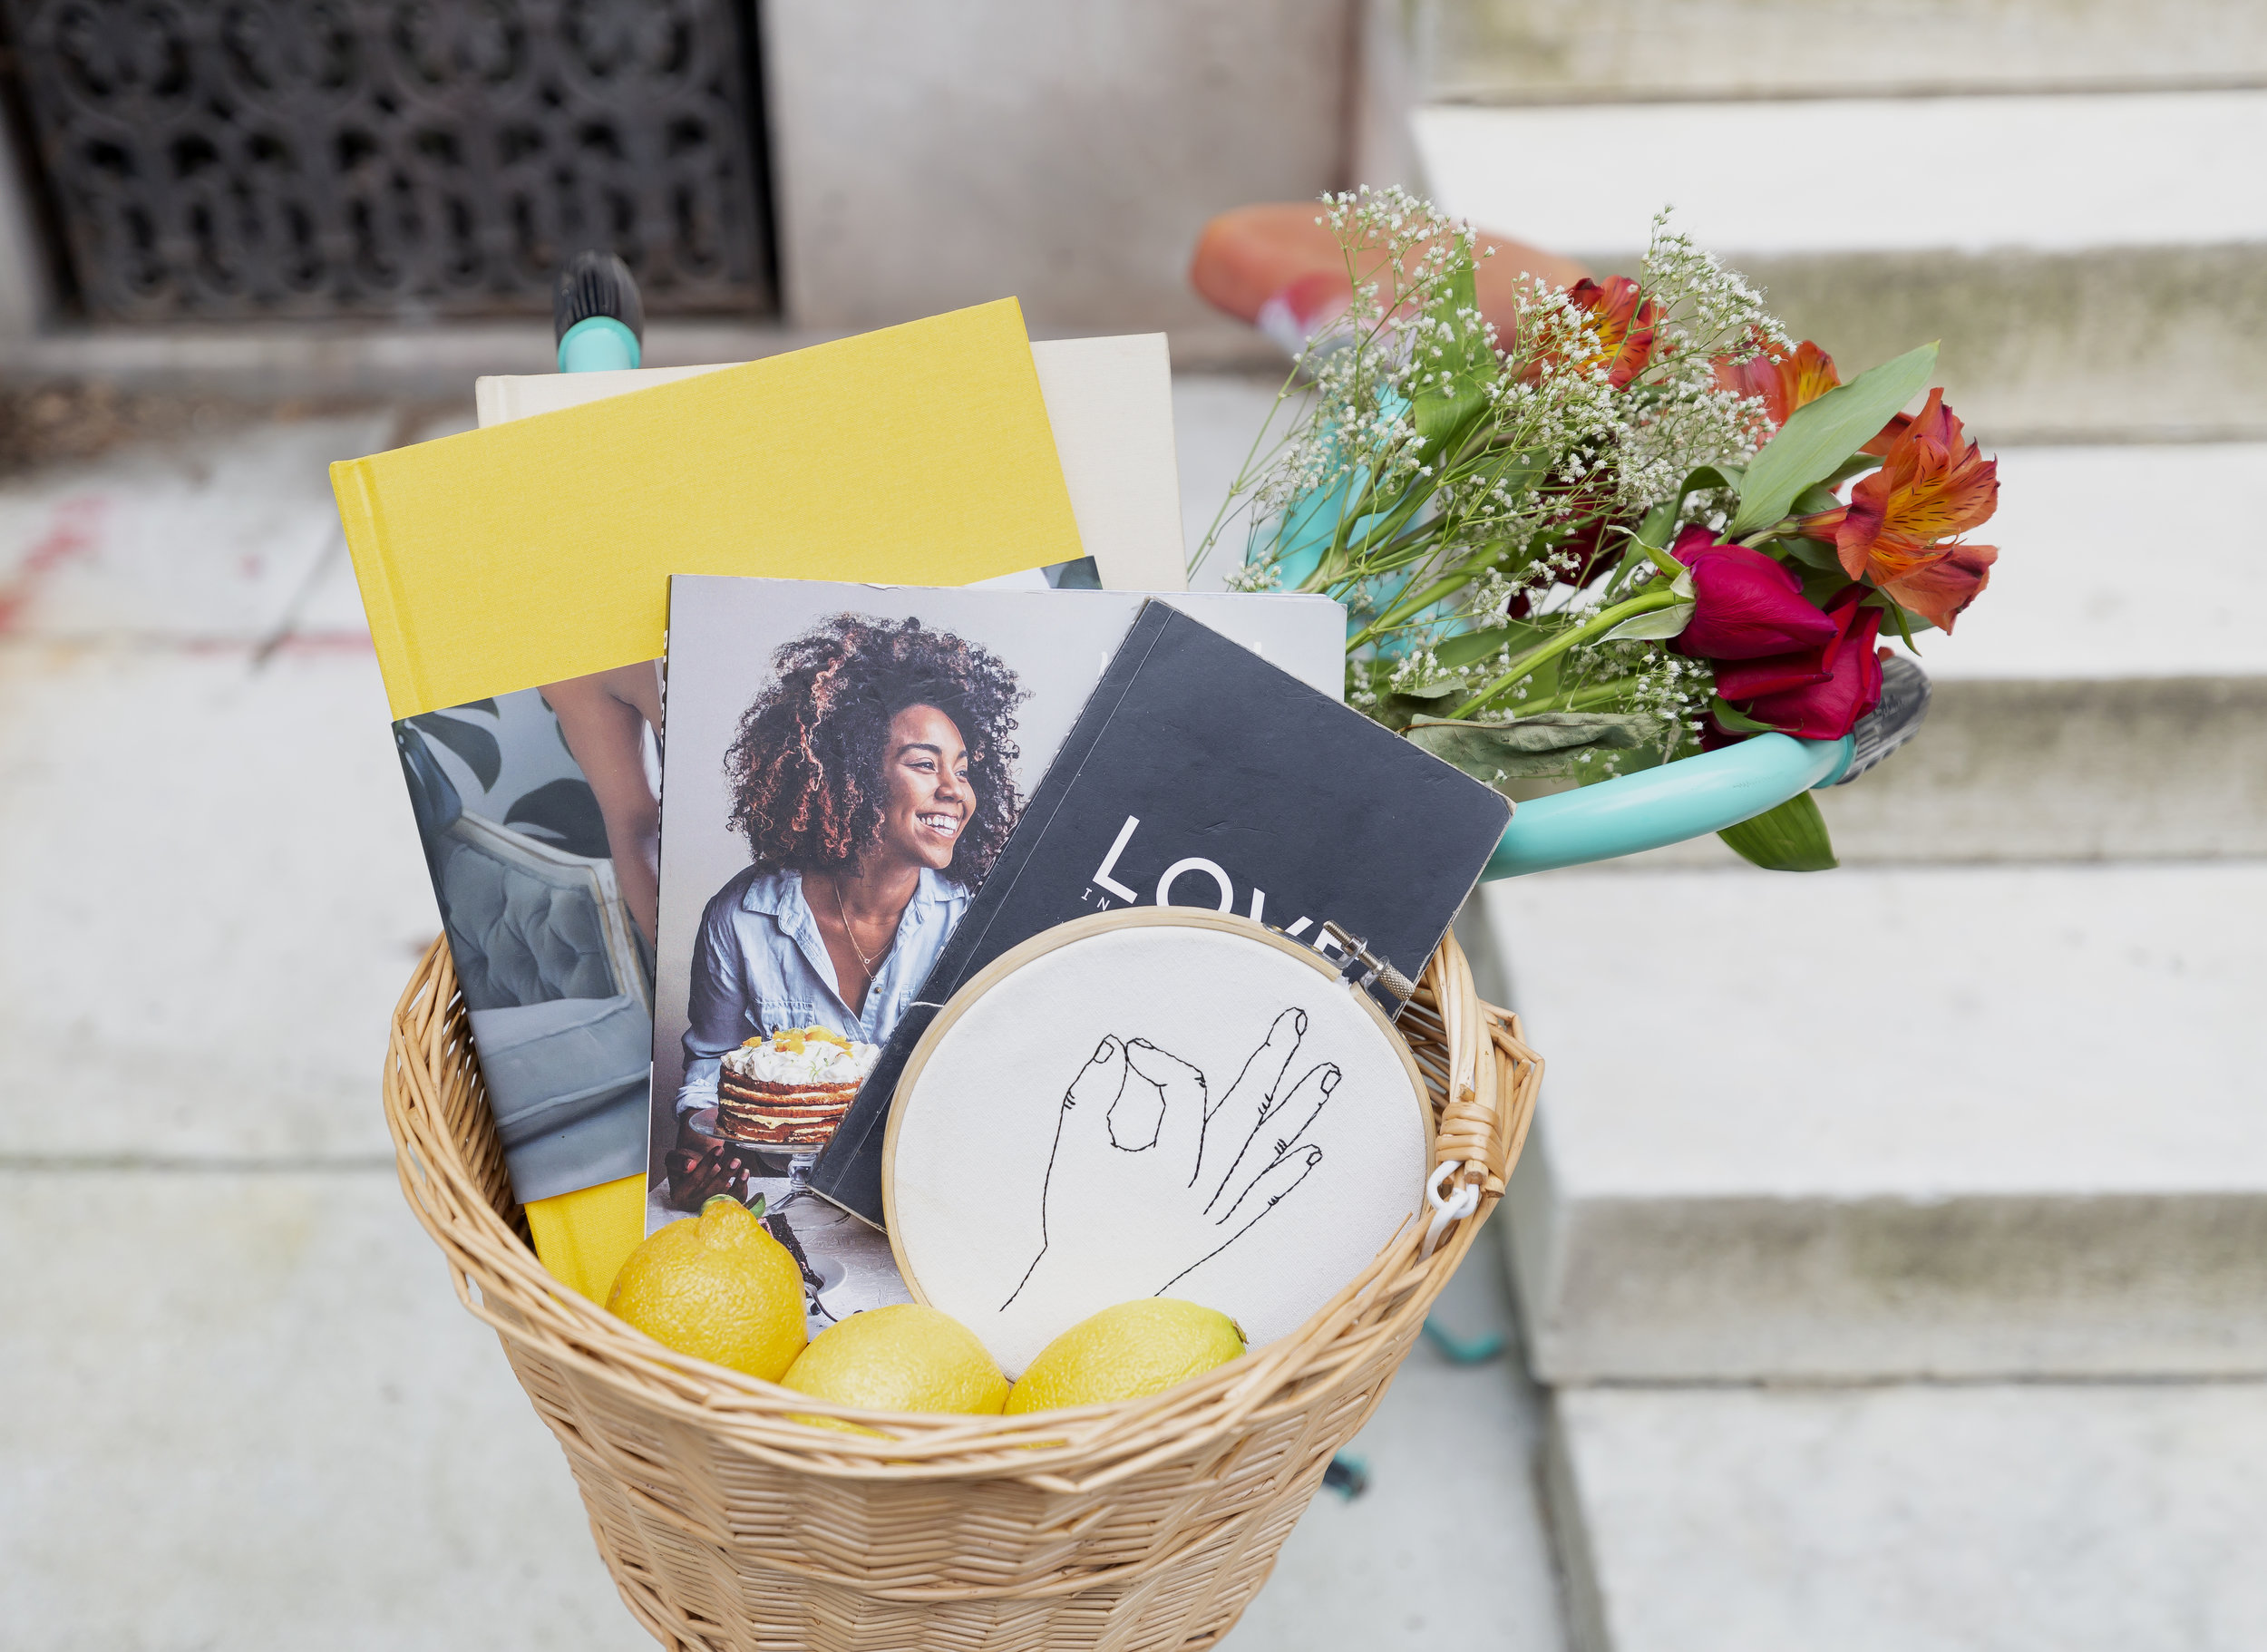 The bike basket filled with black girl magic + lemons